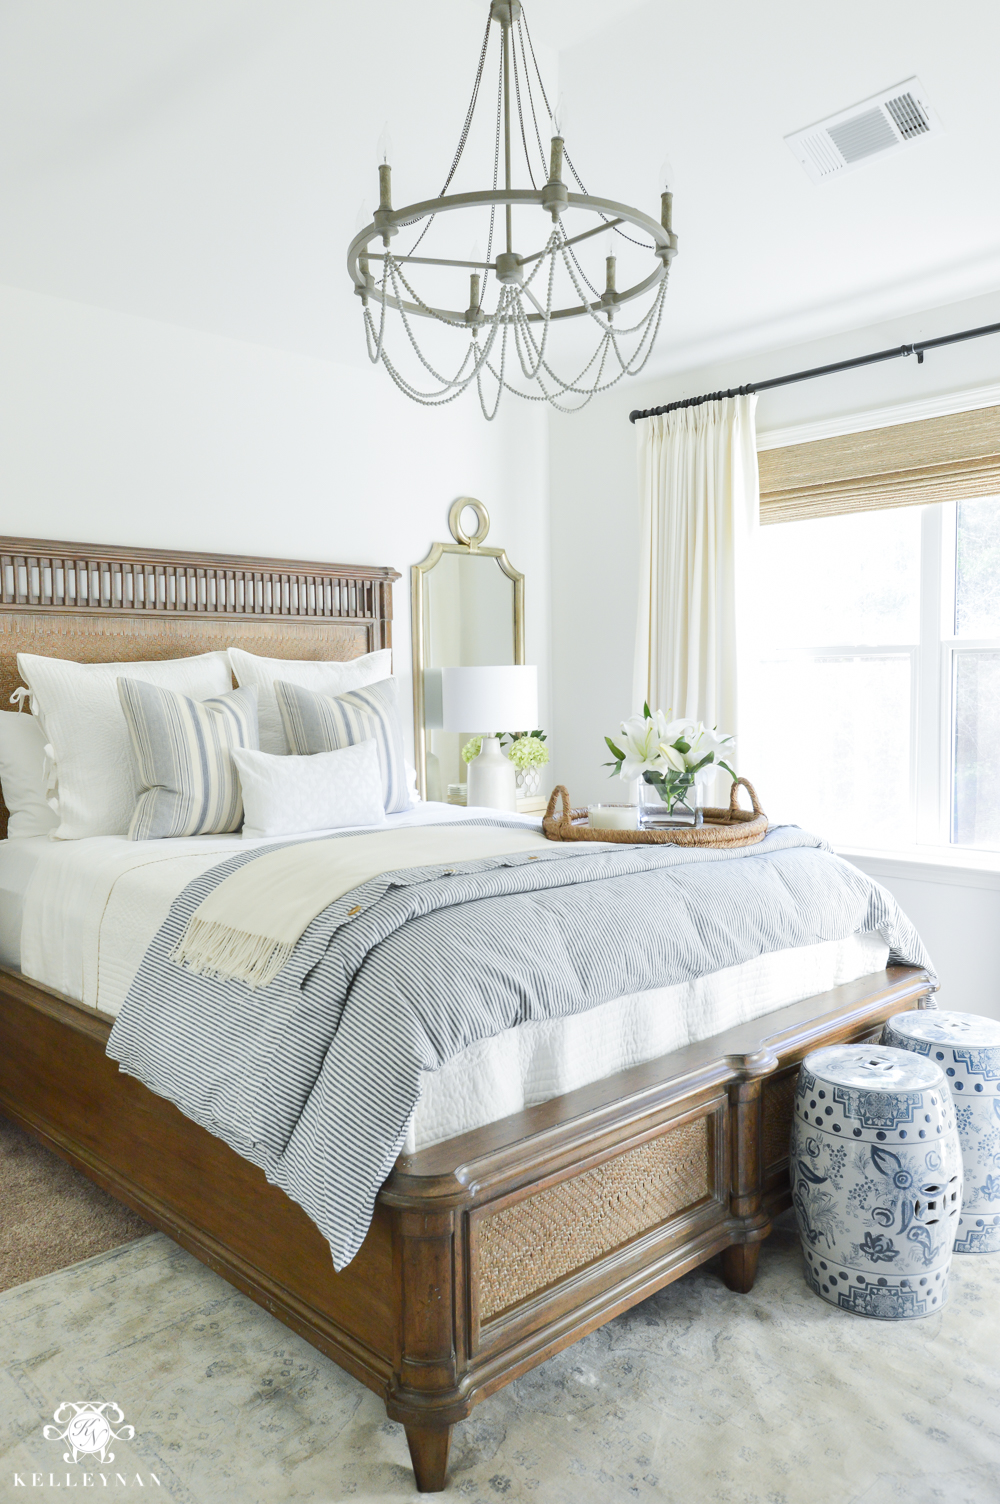 One Room Challenge Classic Blue And White Guest Bedroom Reveal Kelley Nan